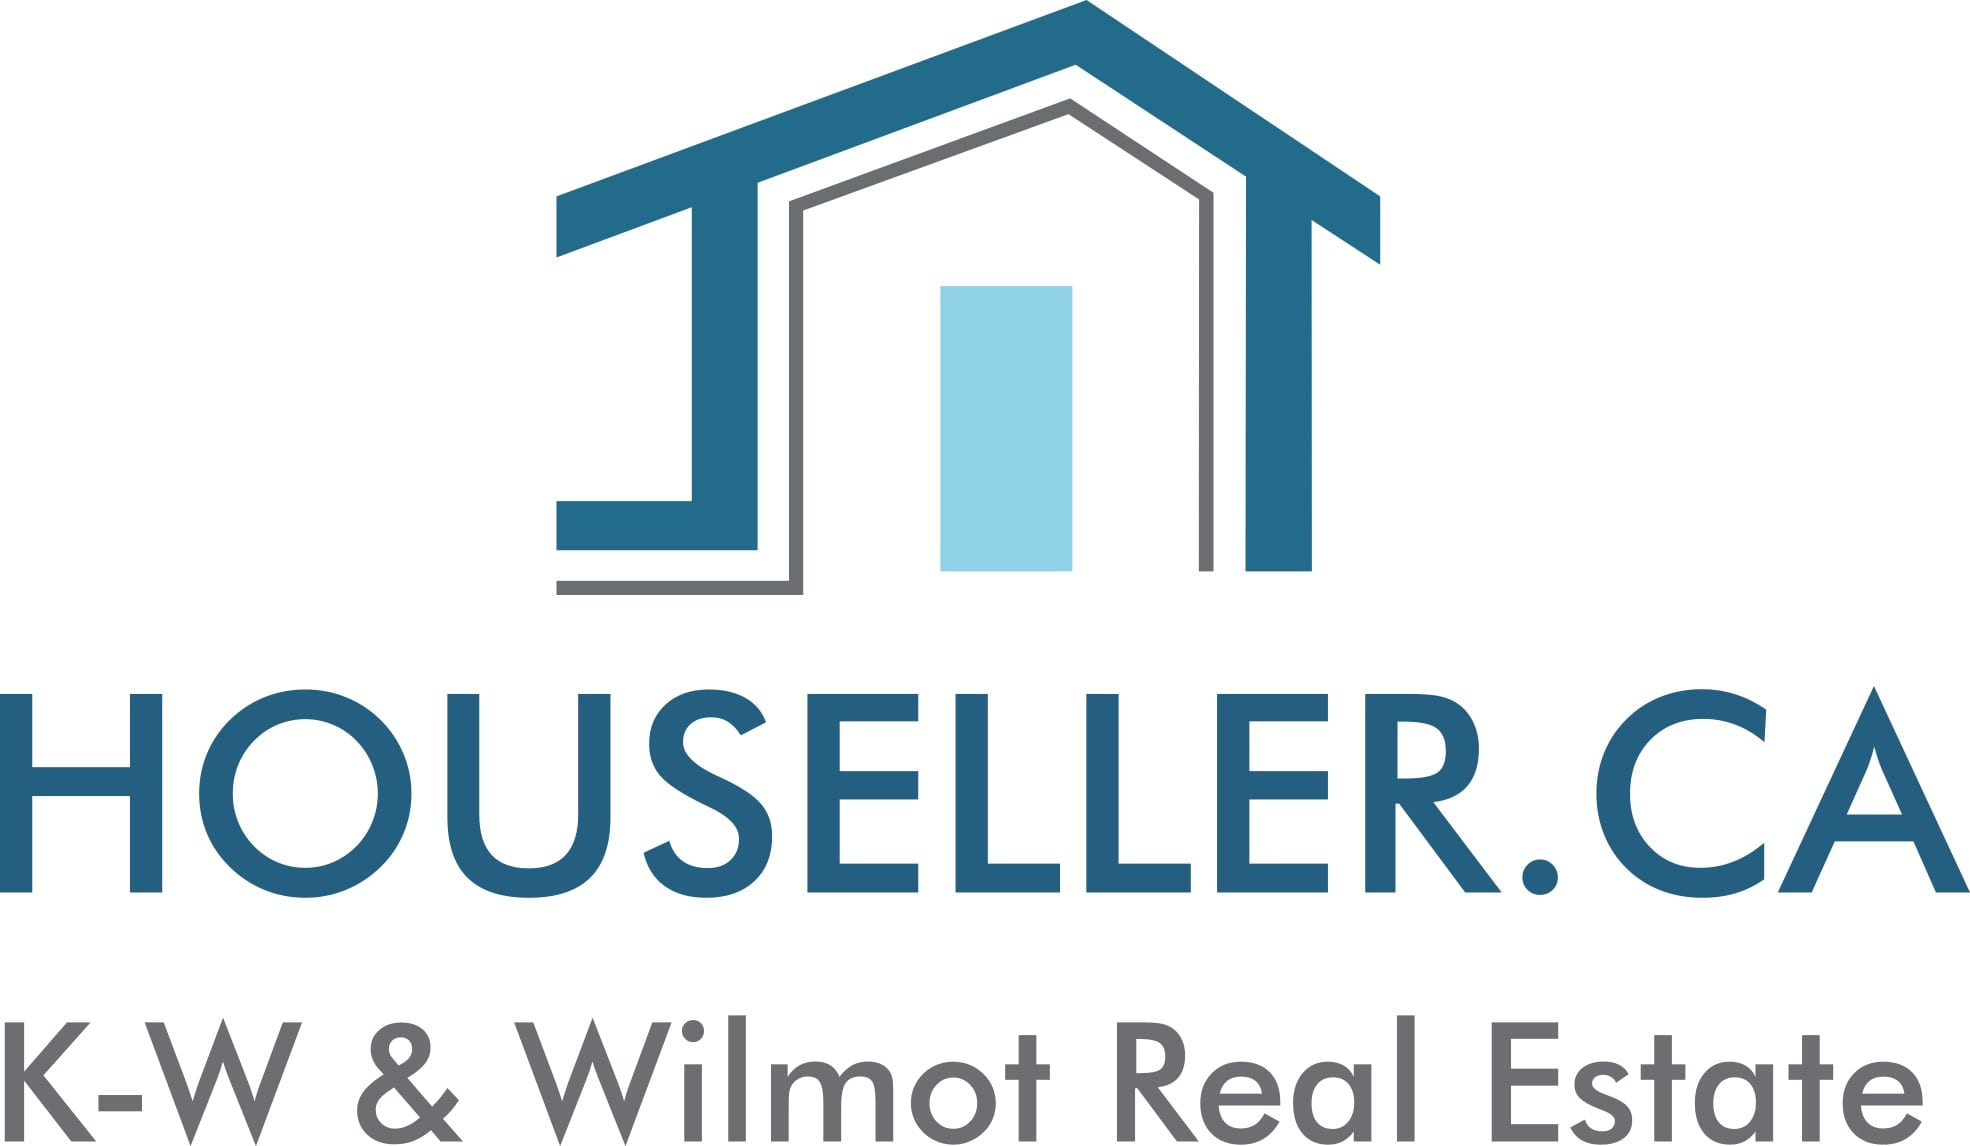 HouseSeller - K.W & Wilmot Real Estate